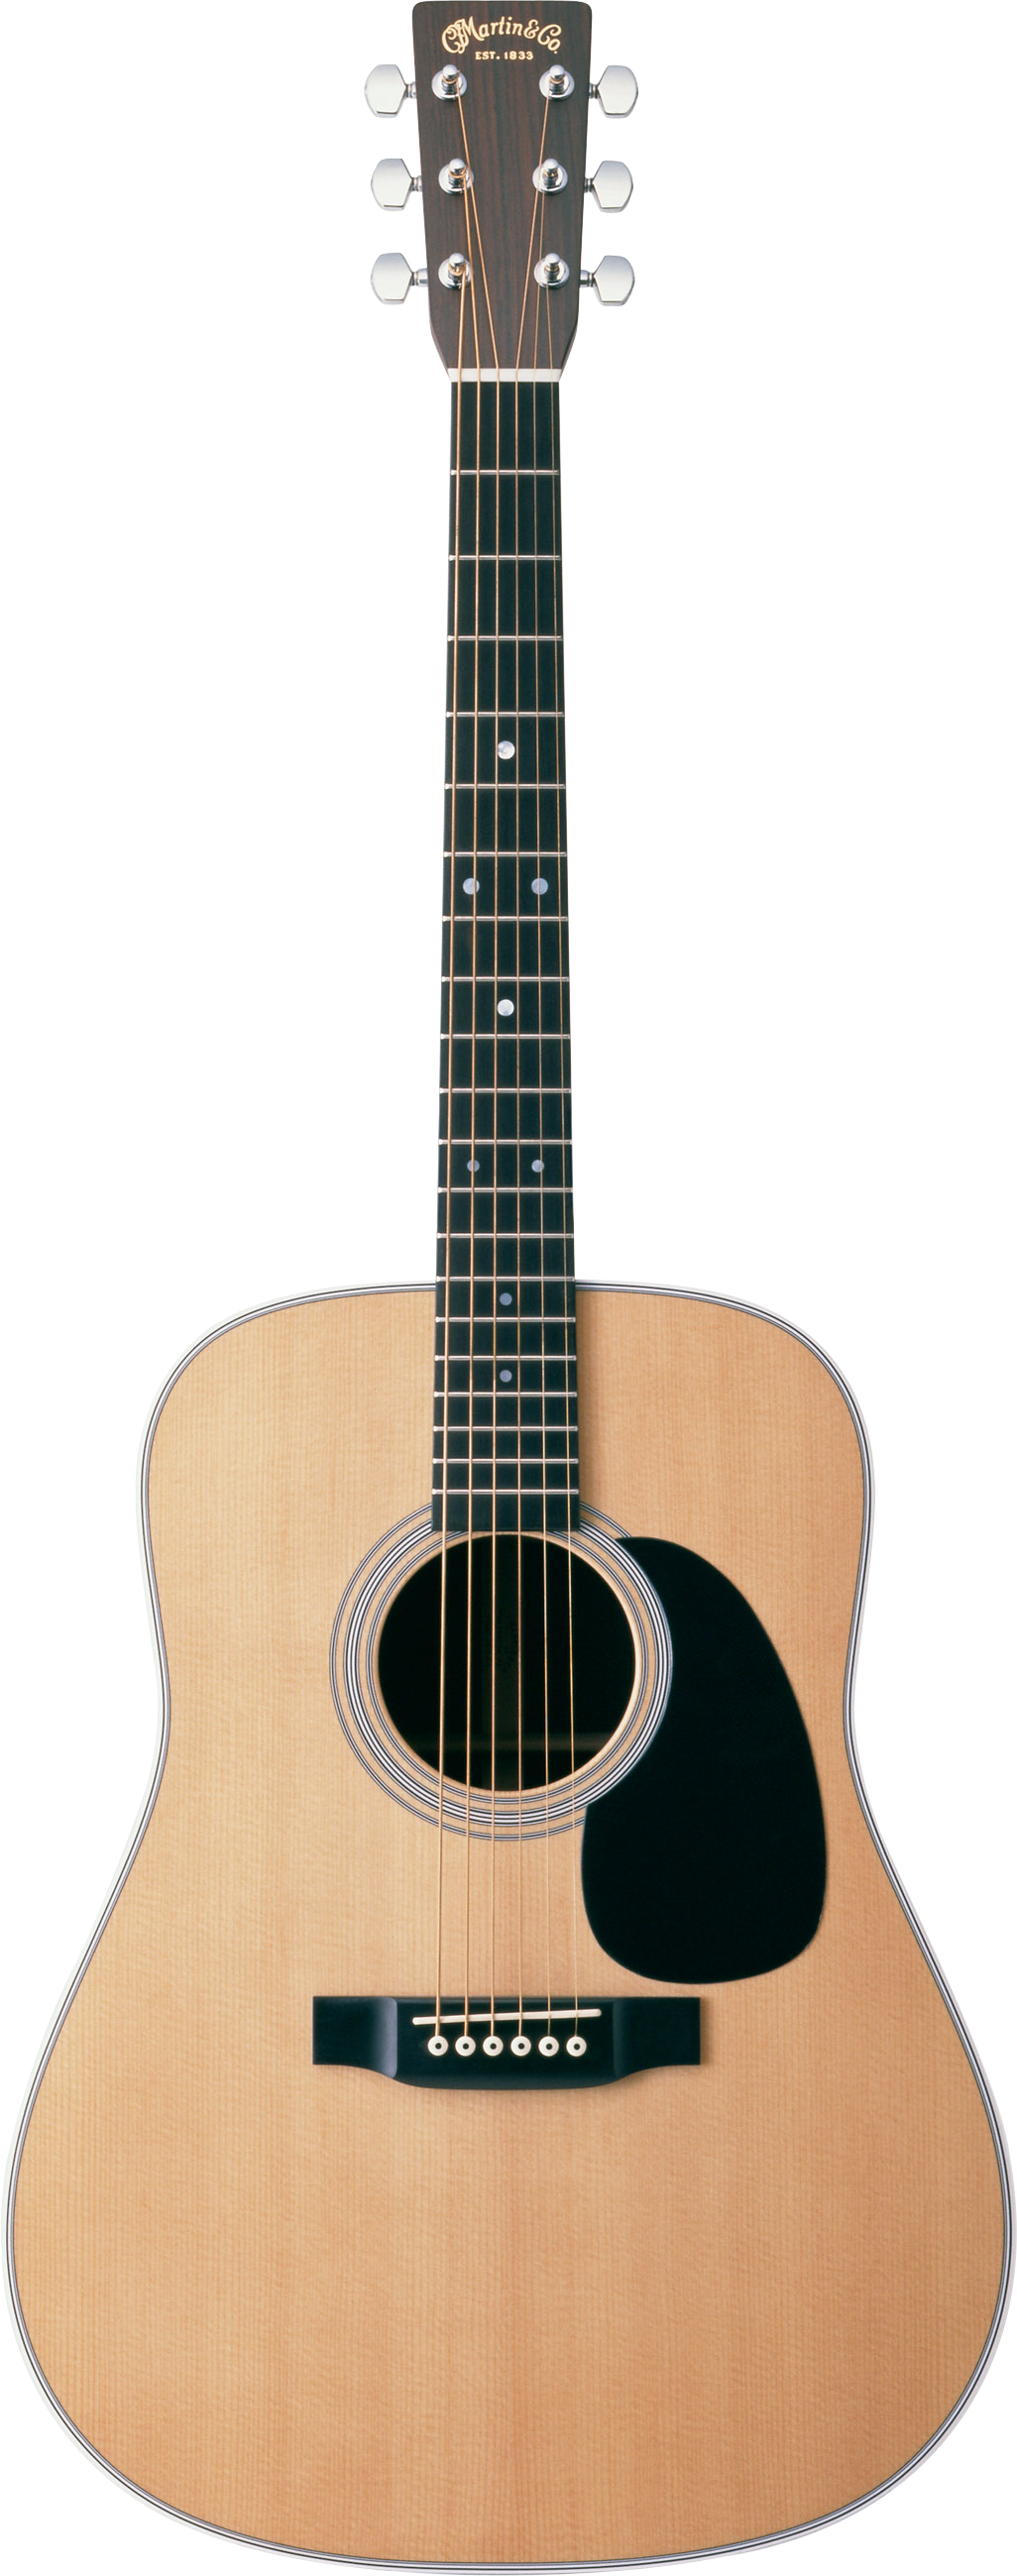 Acoustic Guitar Free Png Image PNG Image